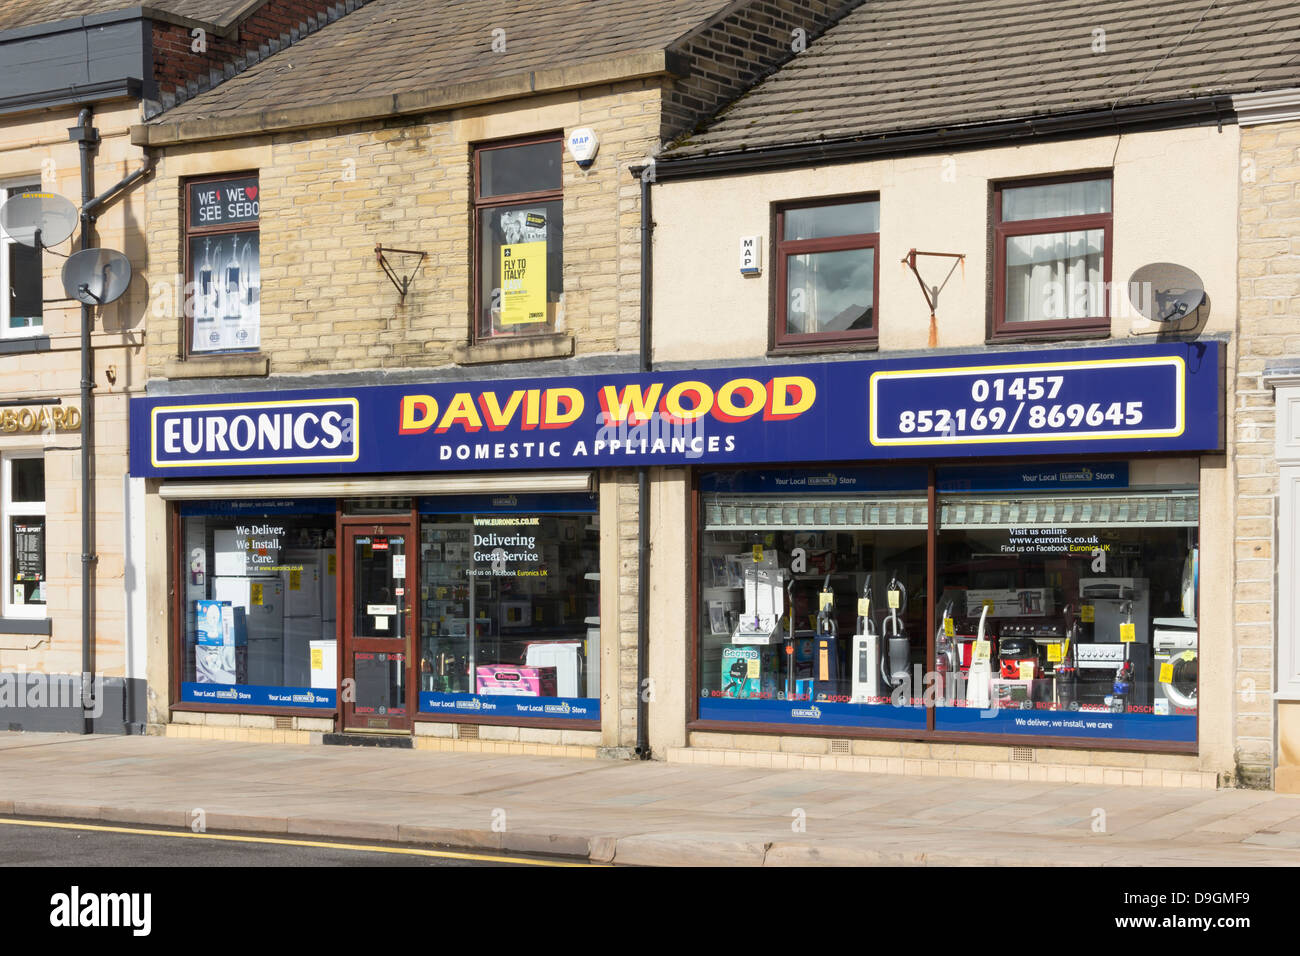 David Wood Domestic Appliances on High Street West, Glossop, an independent shop, part of the Euronics electricals Stock Photo